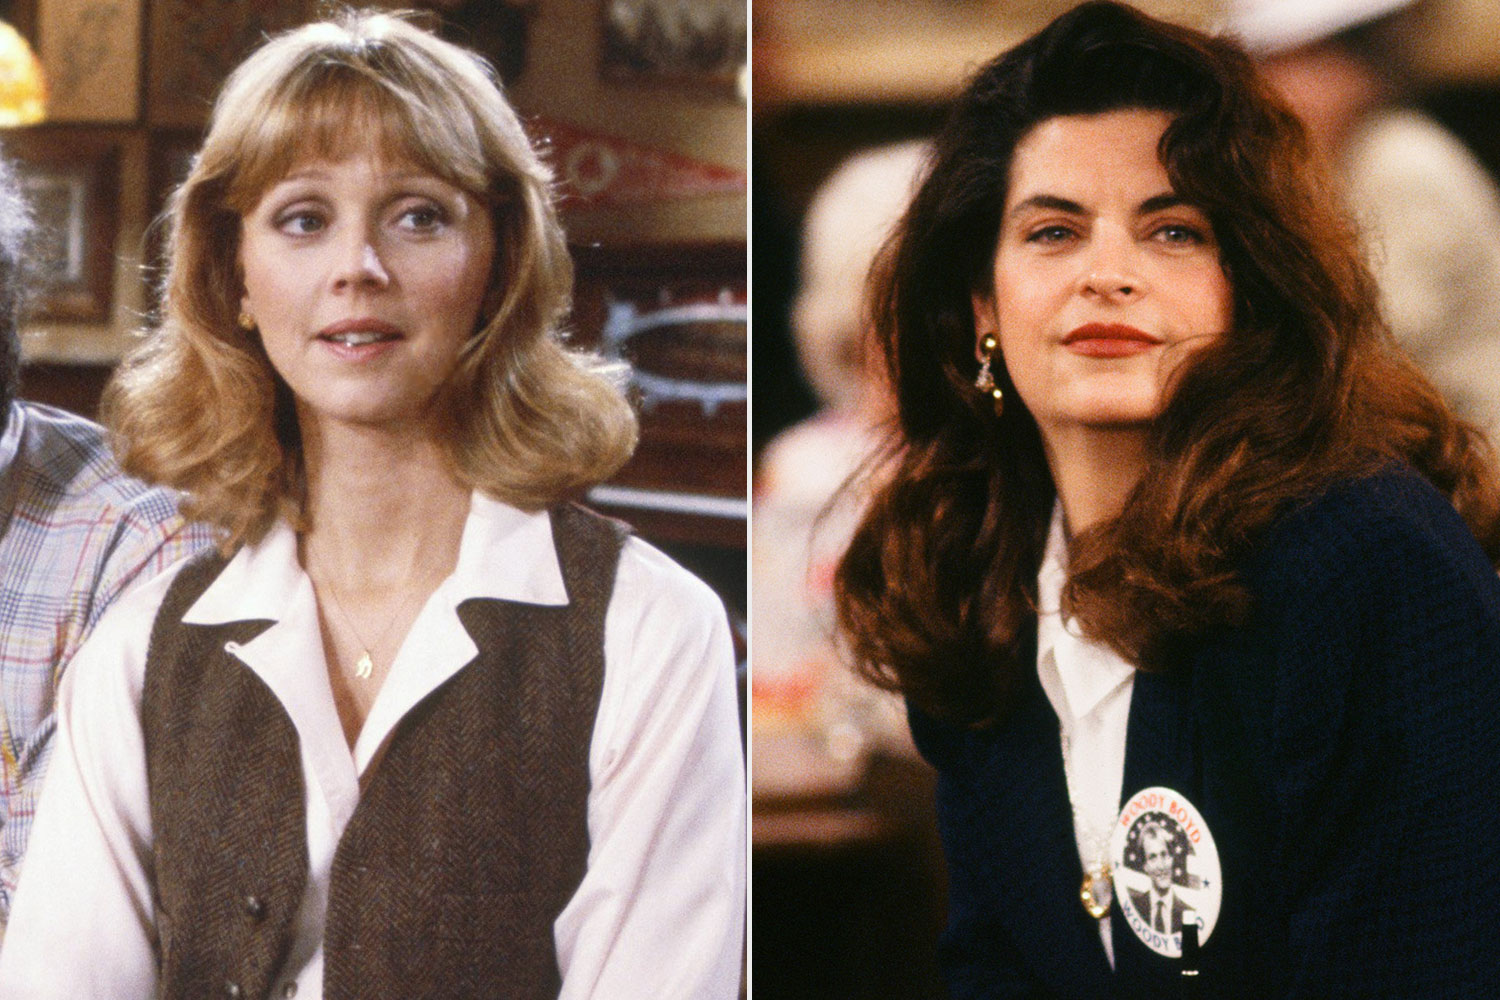 Shelley Long, Kirstie Alley